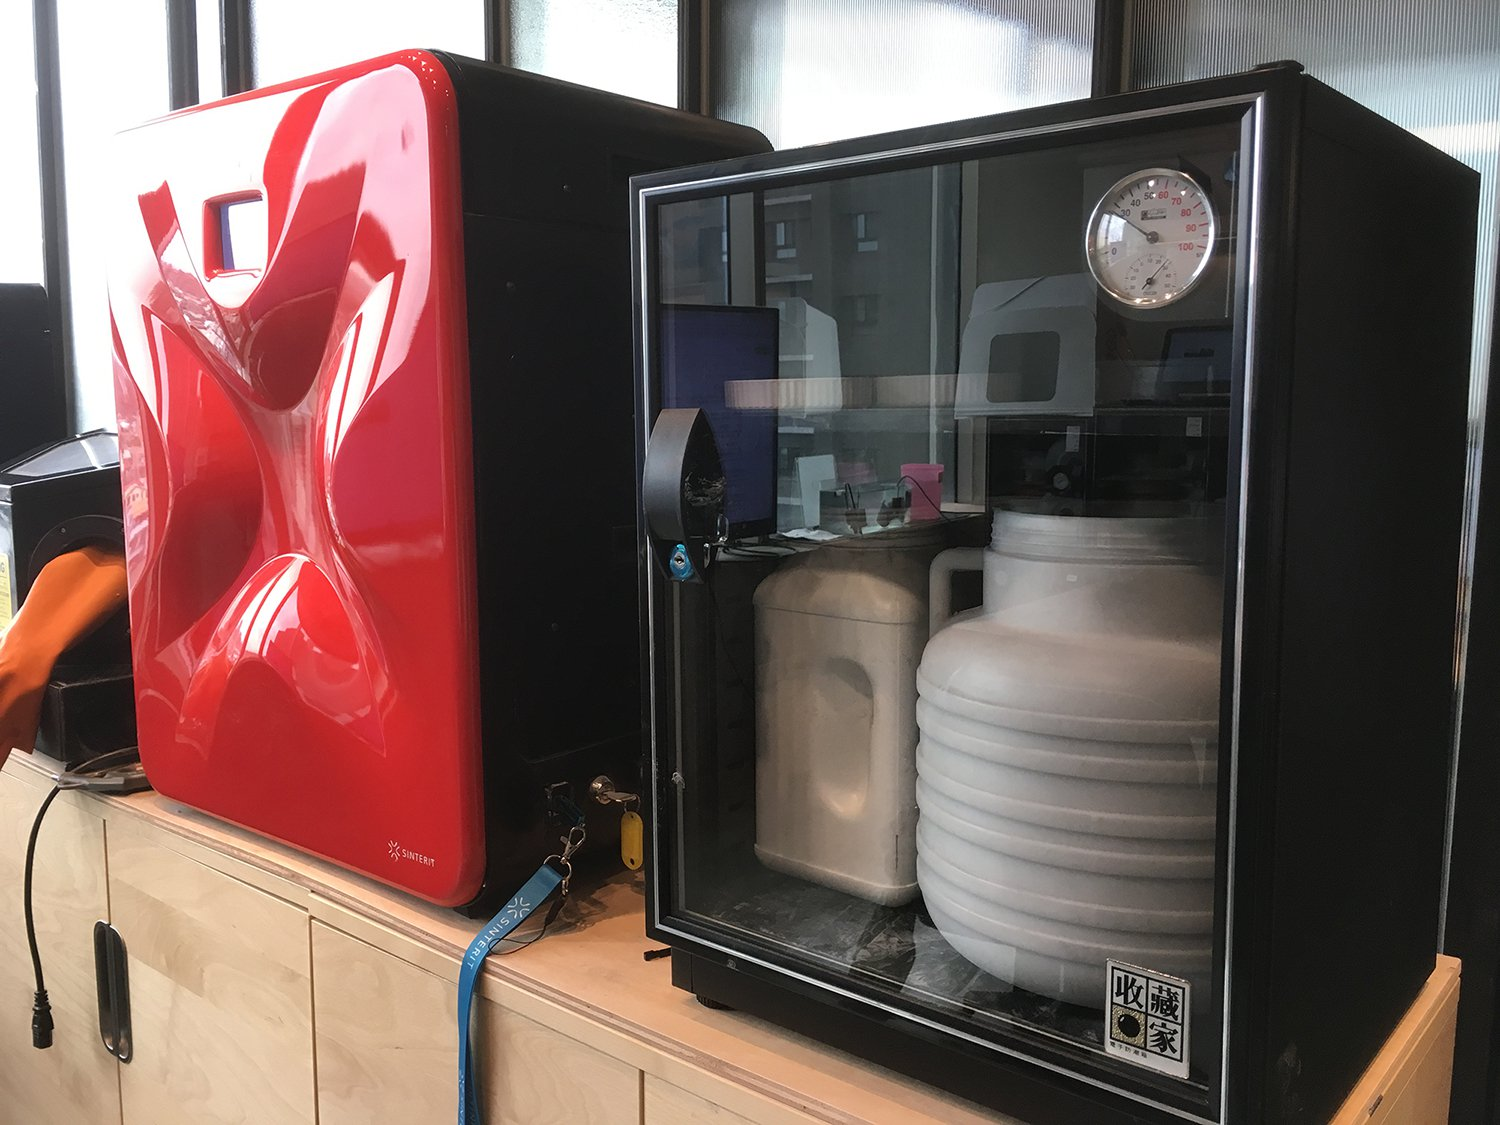 Filament storage in a humidity controlled environment is a must